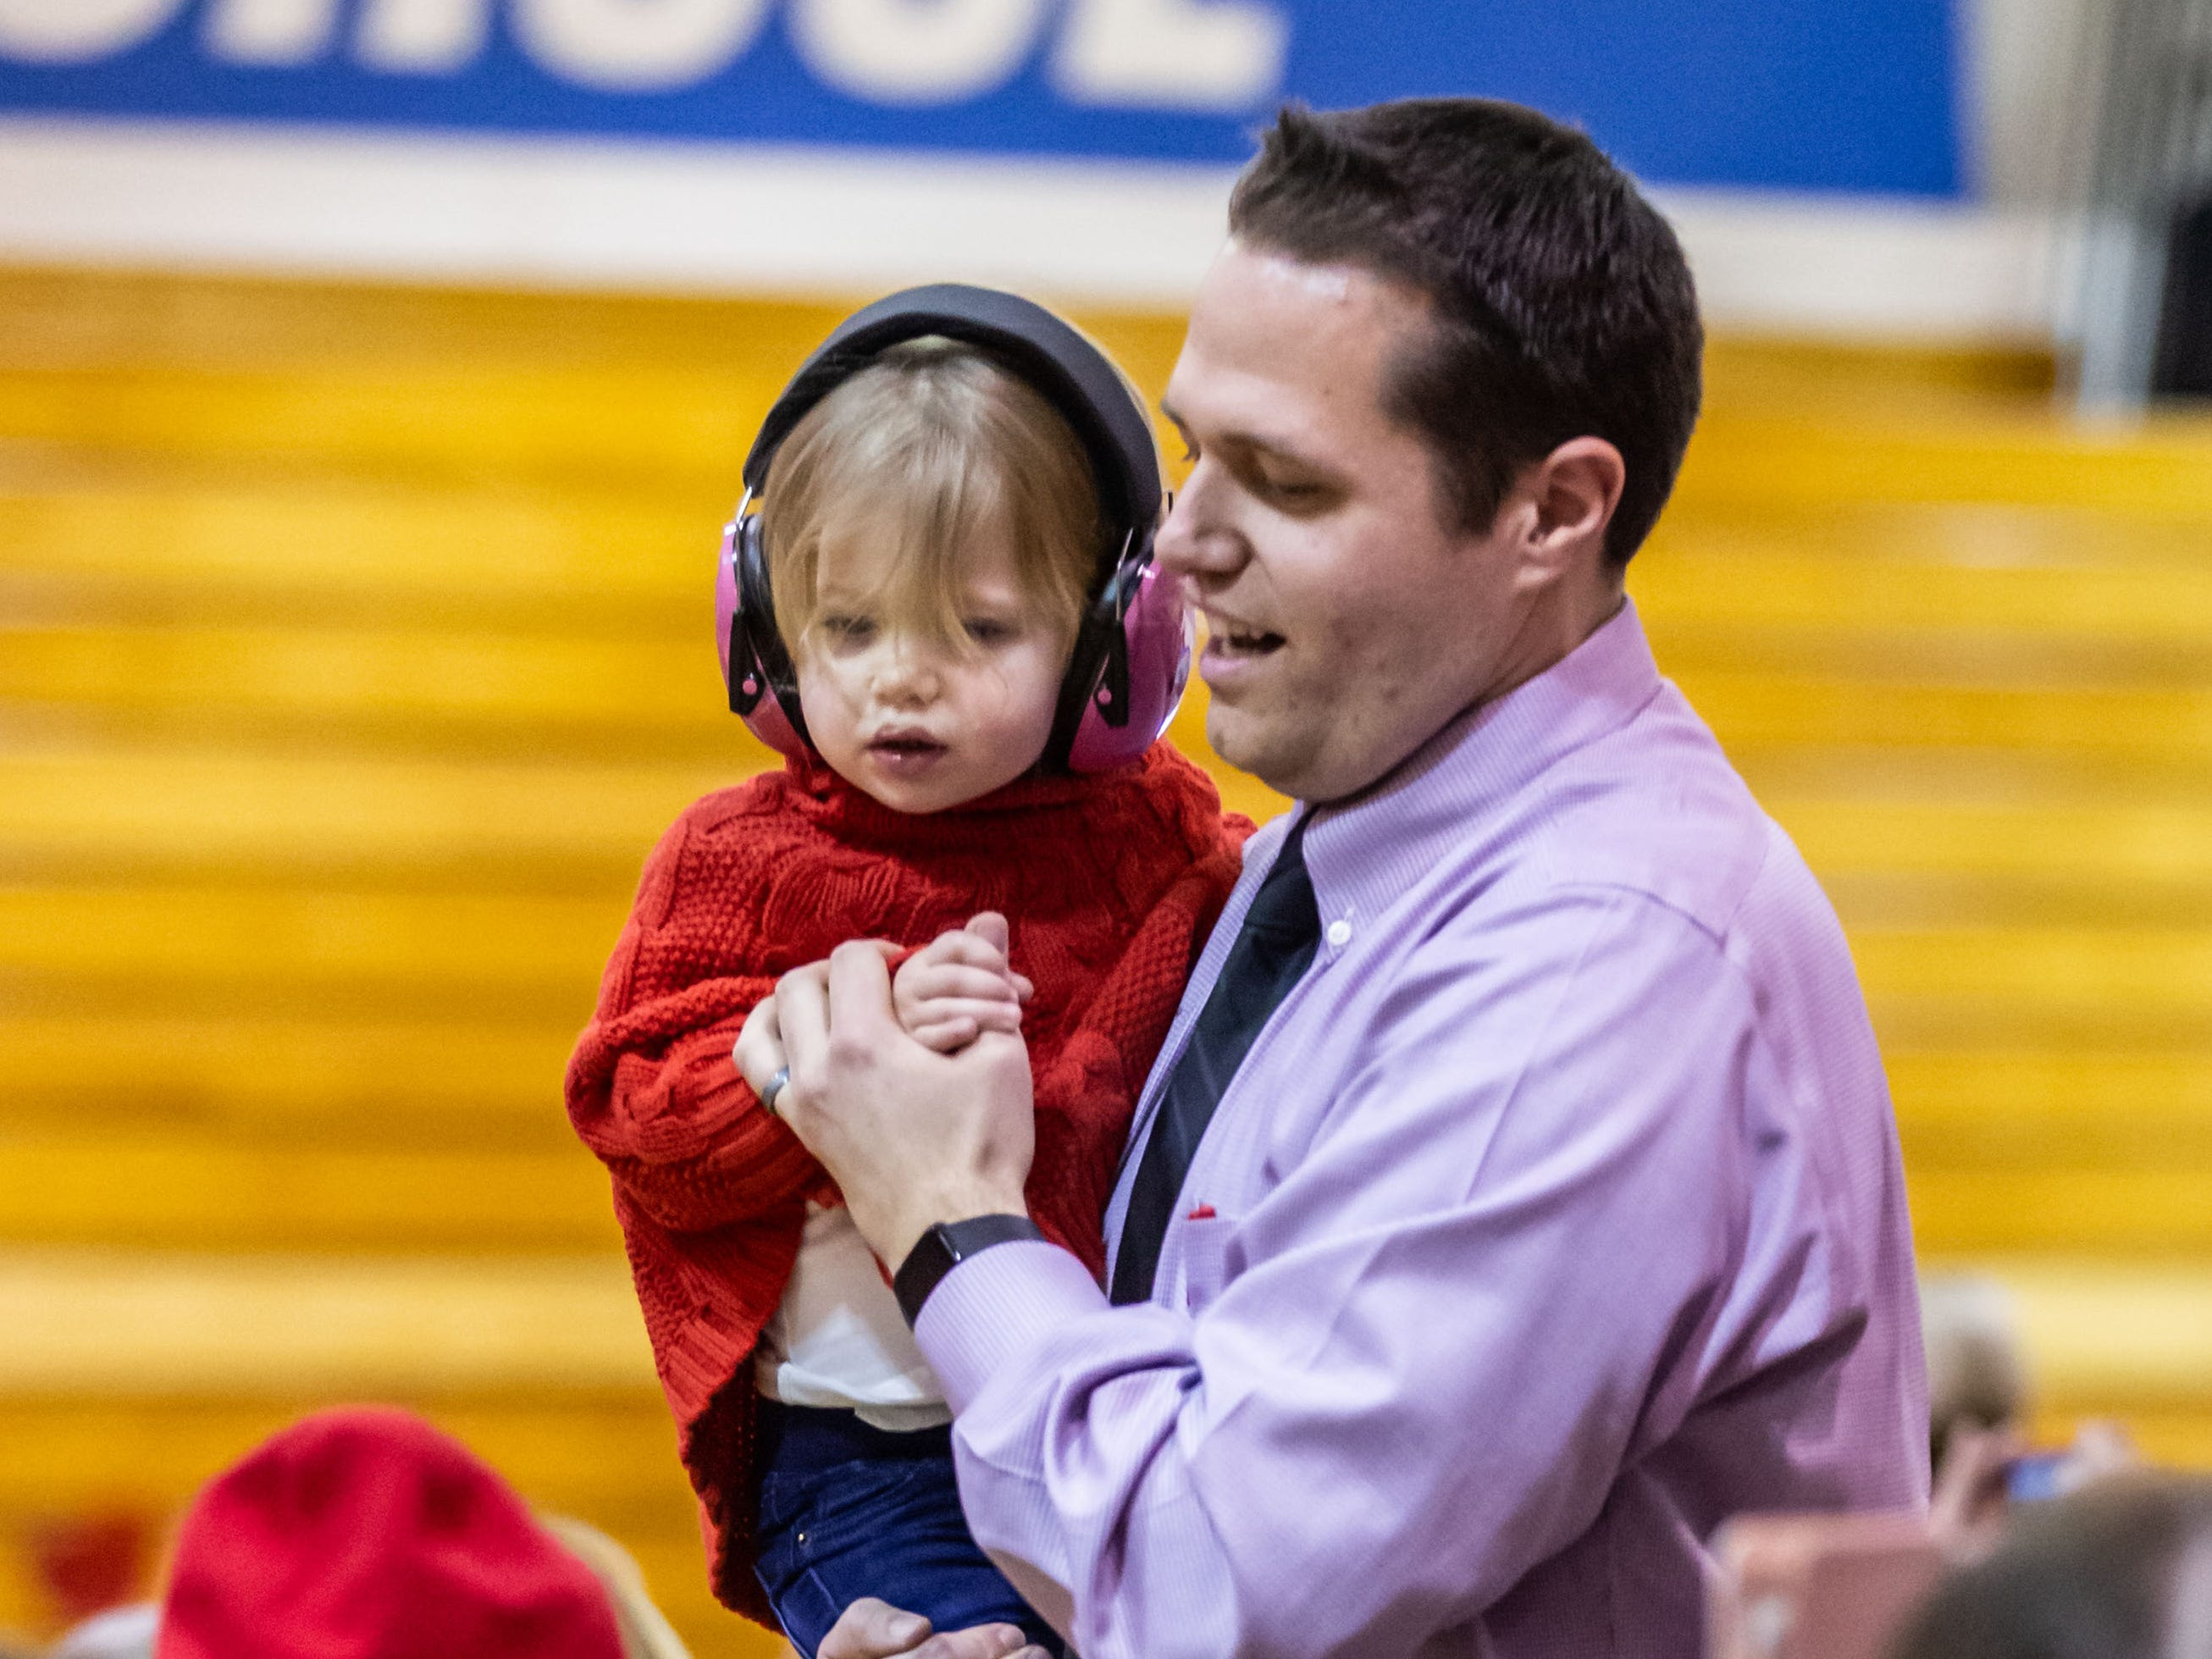 """Oak Creek High School Band Director Guy Gregg dances with his 2-year-old daughter Tessa during the University of Wisconsin-Madison Varsity Band's 23rd """"Show and Revue"""" at the school on Sunday, Feb. 10, 2019."""